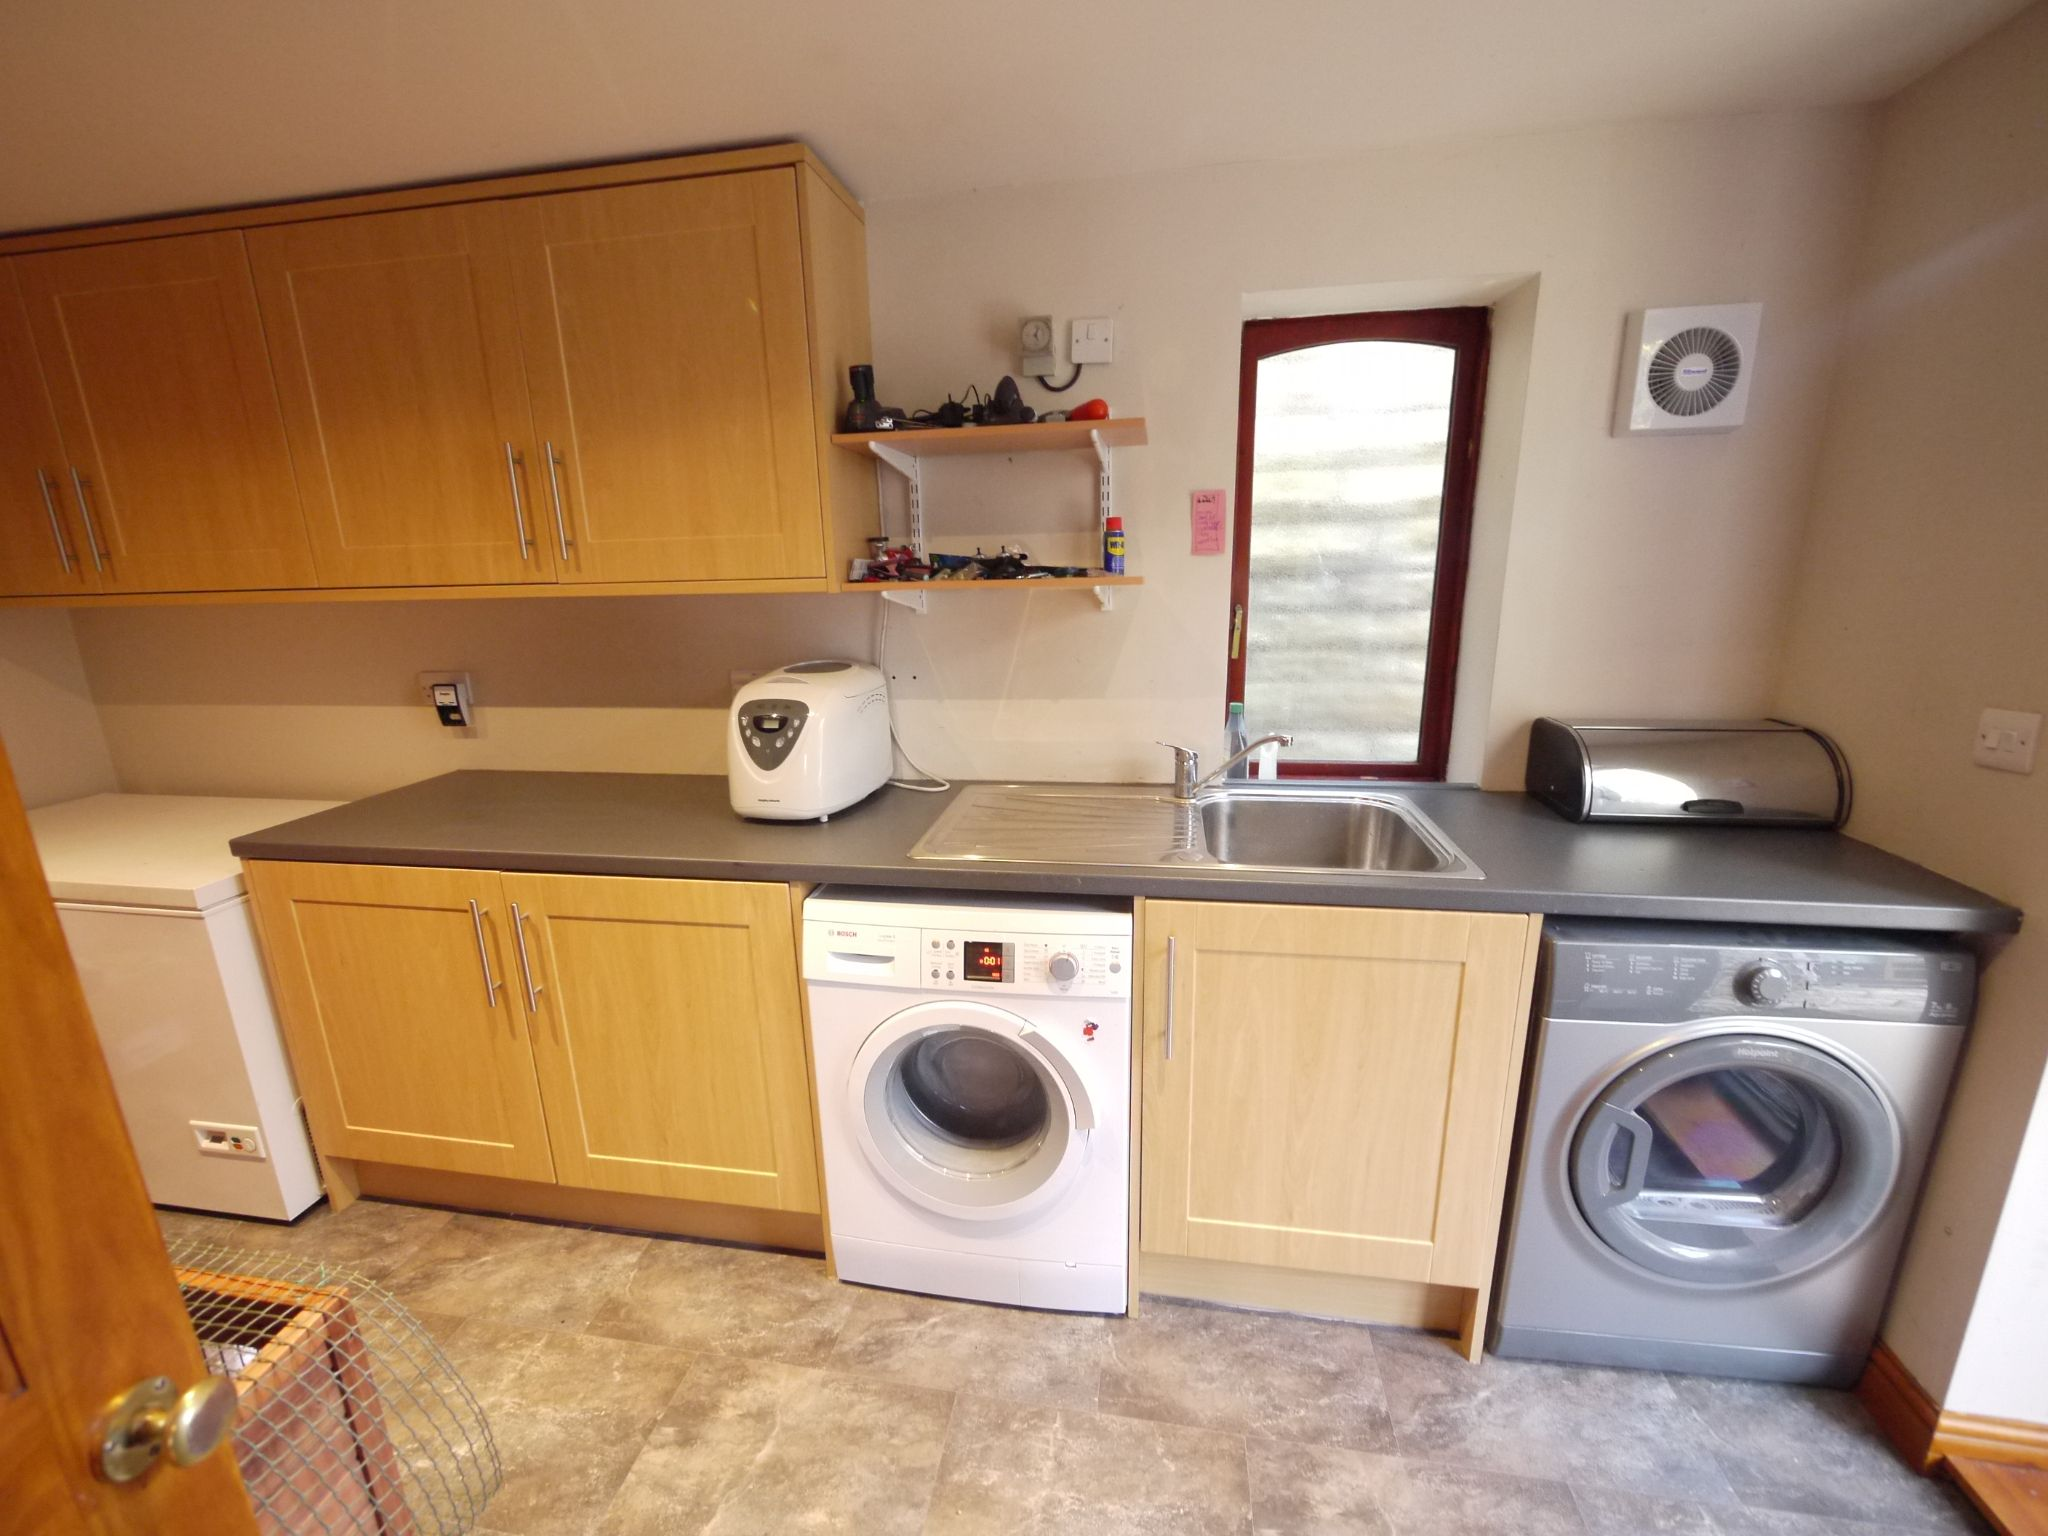 4 bedroom detached house SSTC in Brighouse - Utility Room.